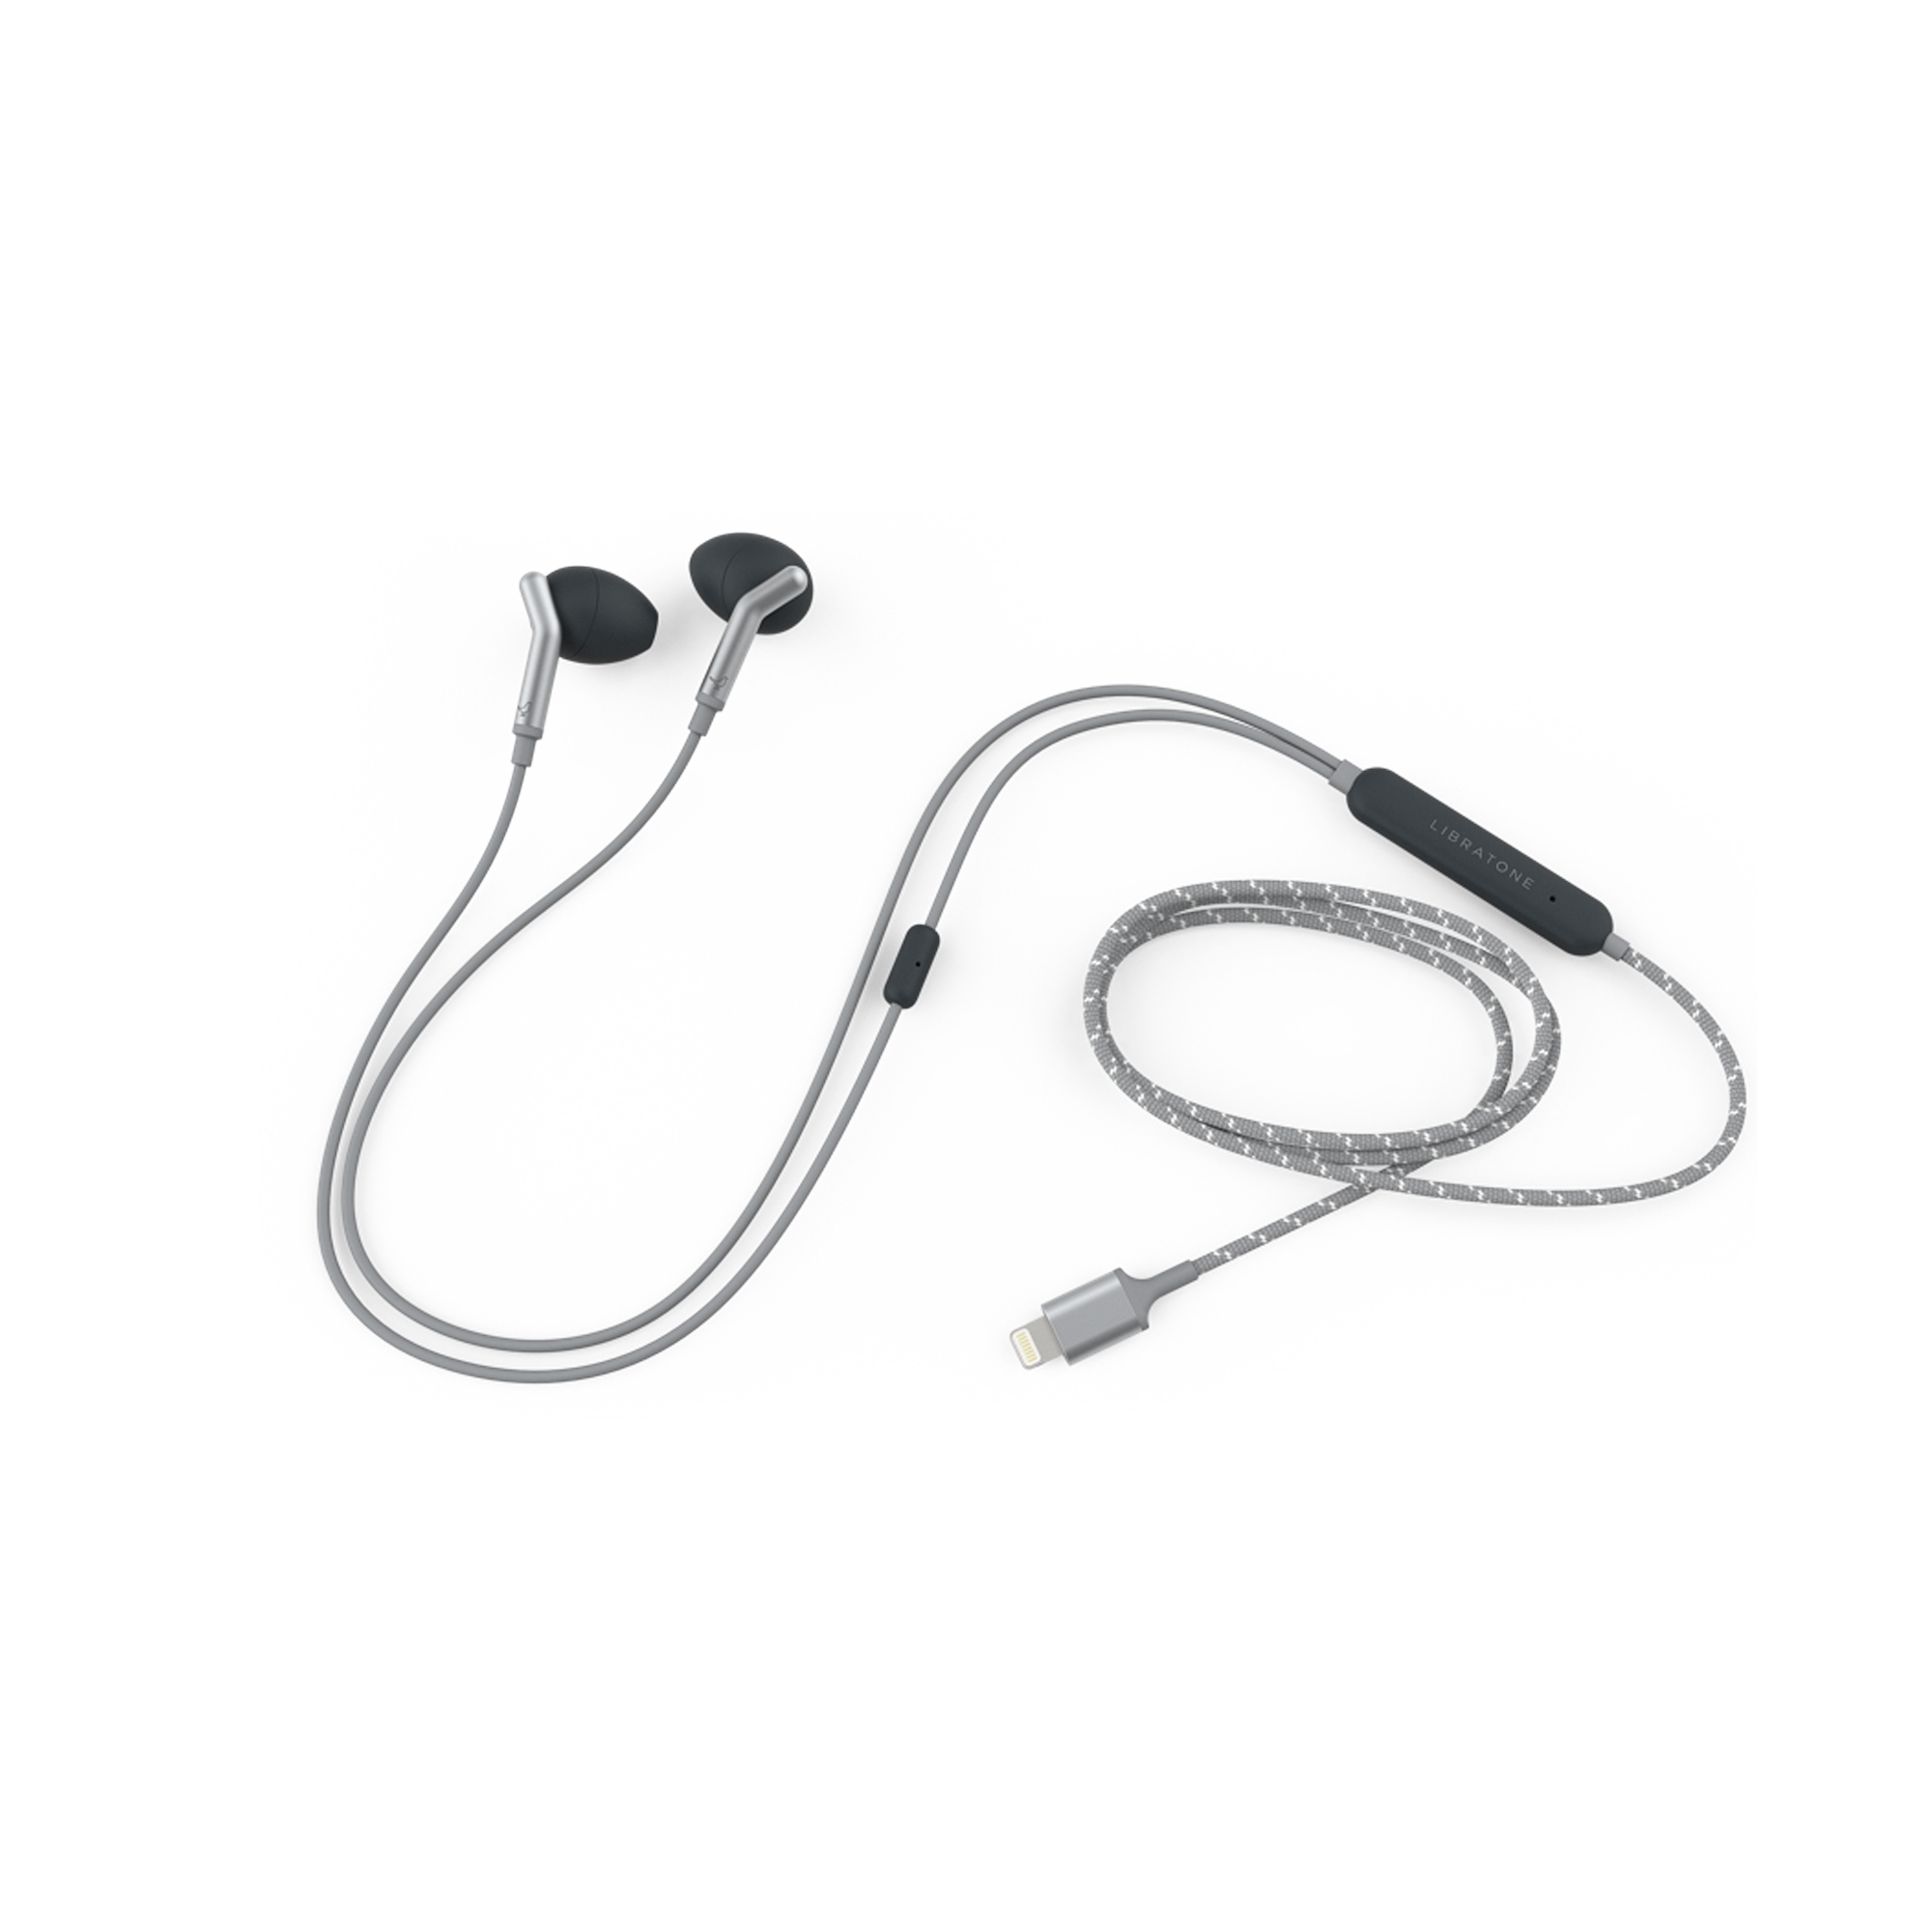 Photo Gallery Lightning Headphones For The Iphone 7 And